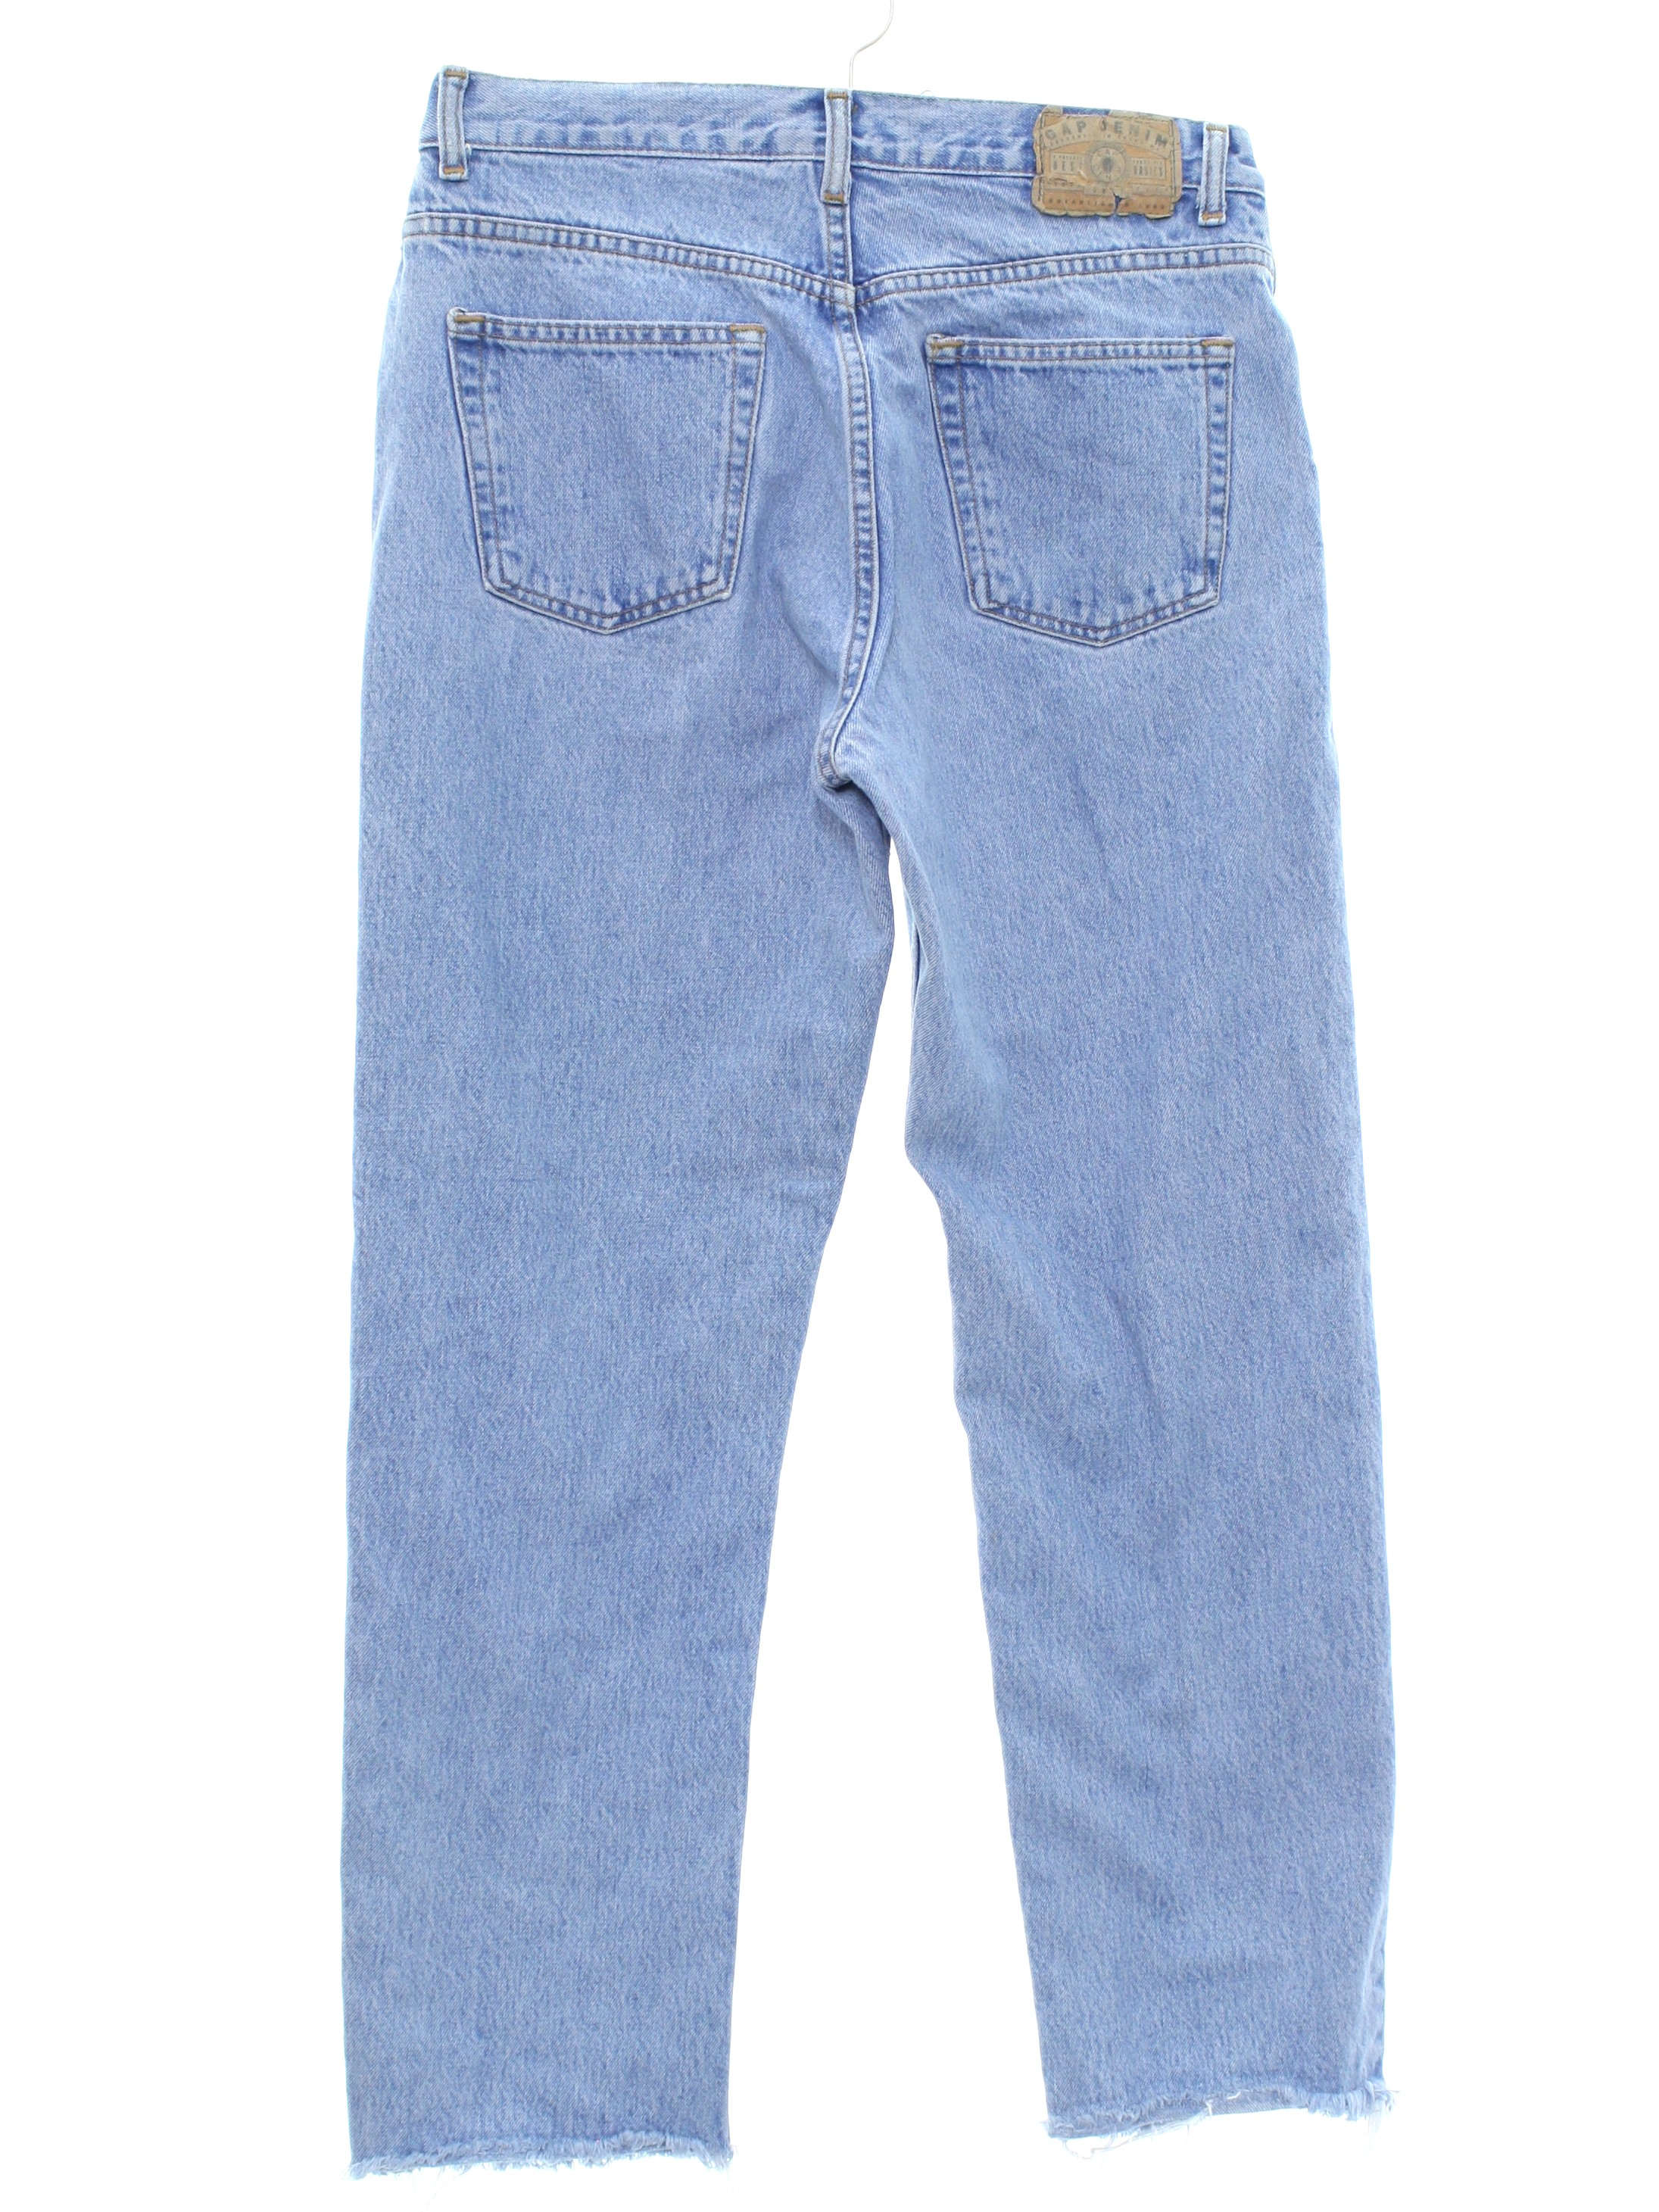 baby togs wide leg jeans 80s eighties 90s nineties style 4T retro vtg vintage pants pockets blue soft girls high rise seams trendy